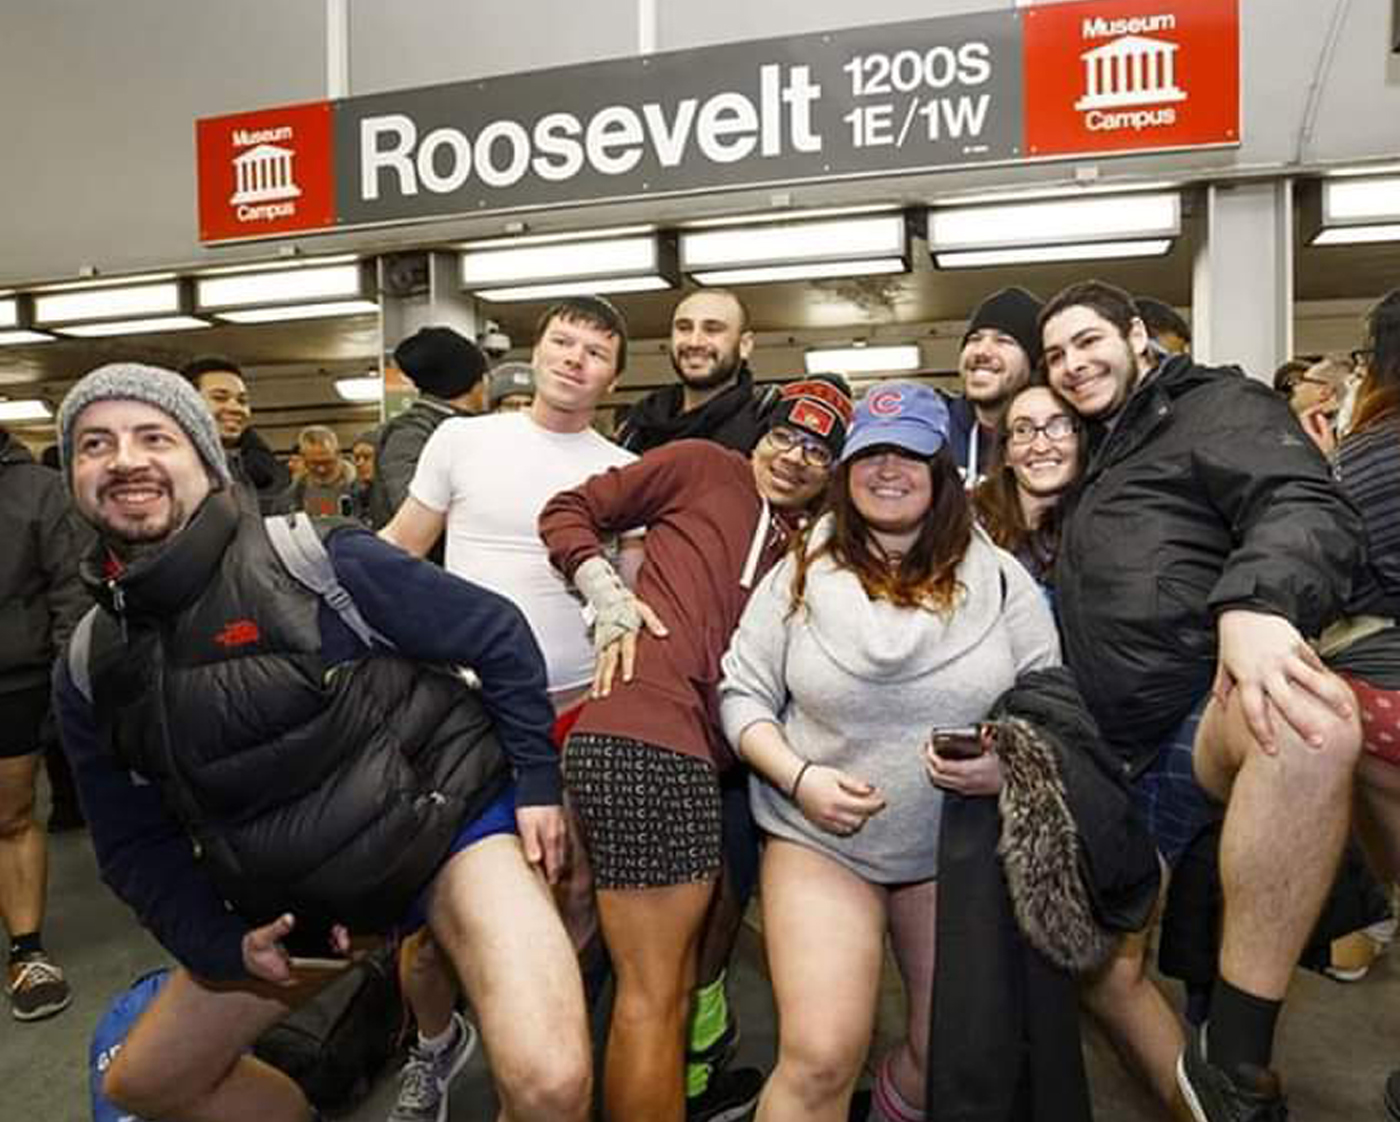 """The """"No Pants Subway Ride"""" is """"a celebration of silliness,"""" organizers say."""